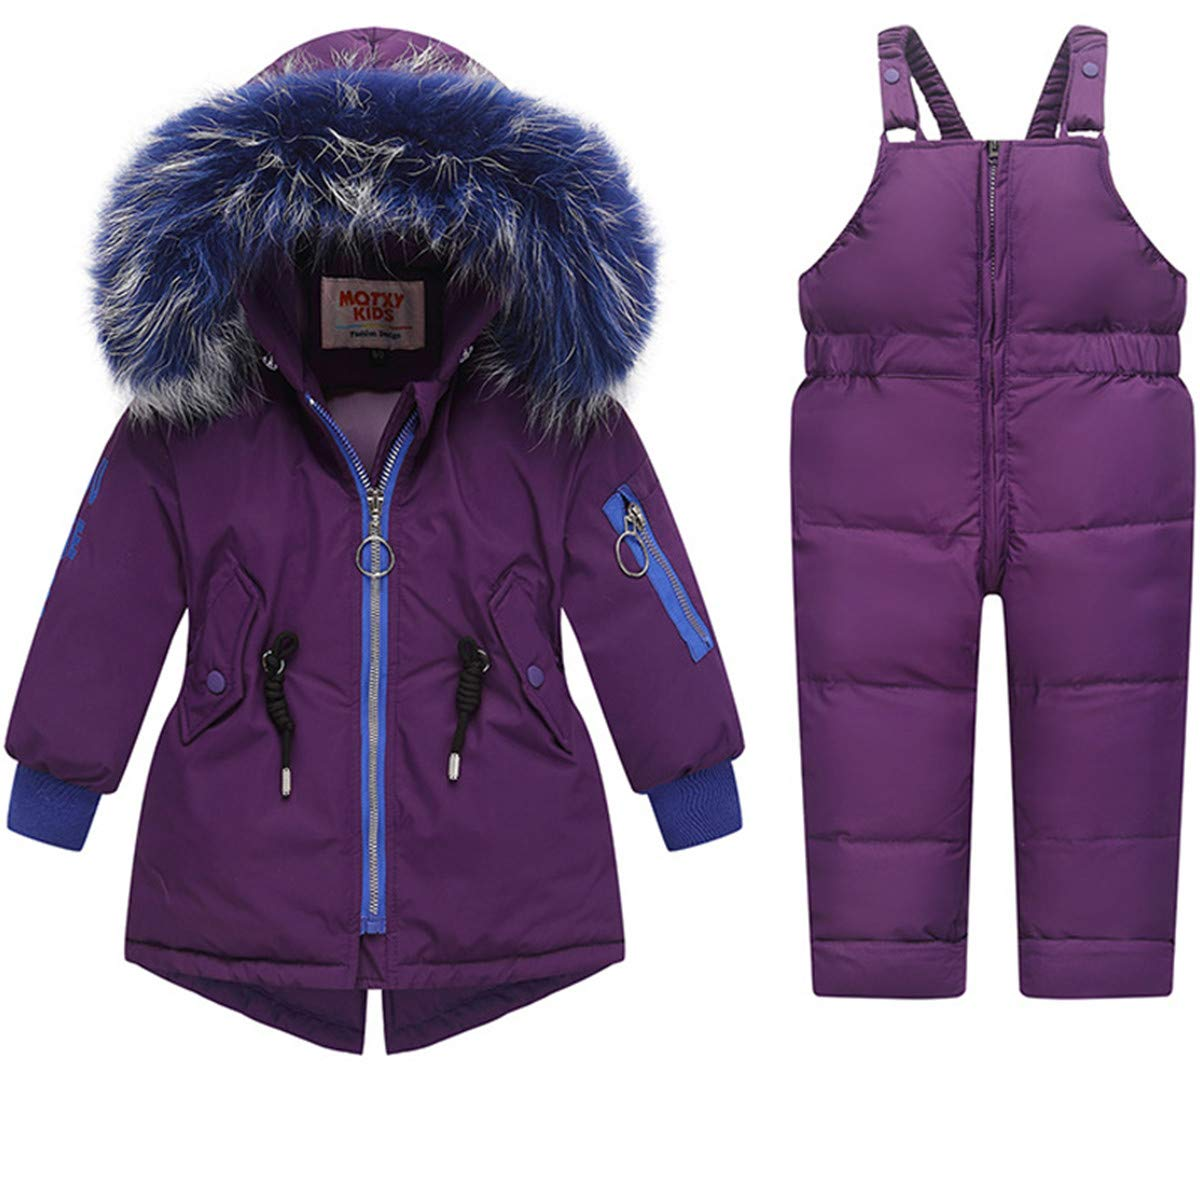 REWANGOING 2 Pcs Baby Kids Girls Winter Warm Colorful Fur Trim Puffer Down Jacket Snowsuit with Ski Bib Pants Set 2-3 Years Purple by REWANGOING